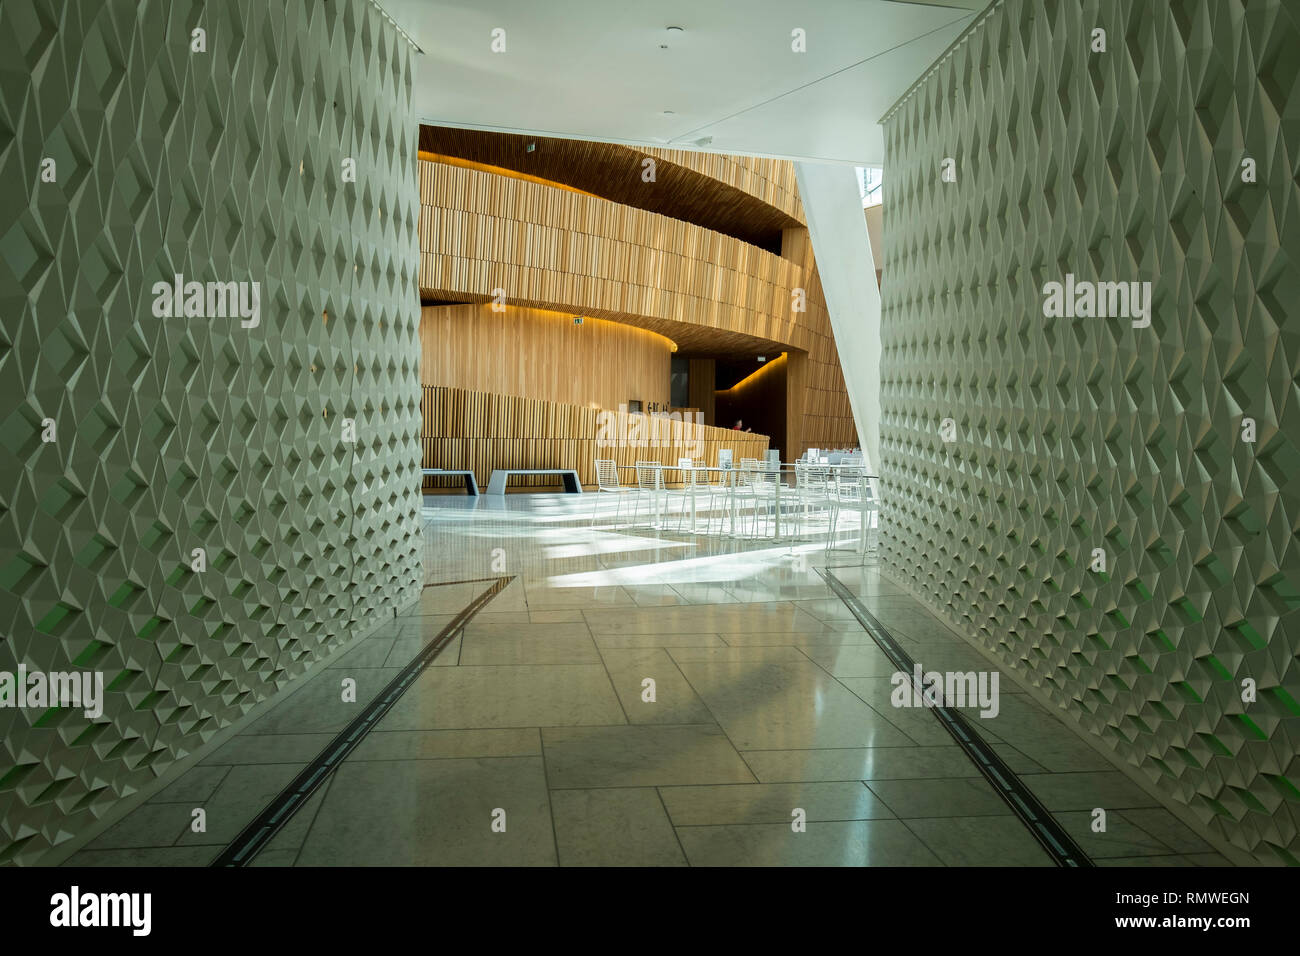 The wooden core inside Oslo's new Opera House in Norway. - Stock Image